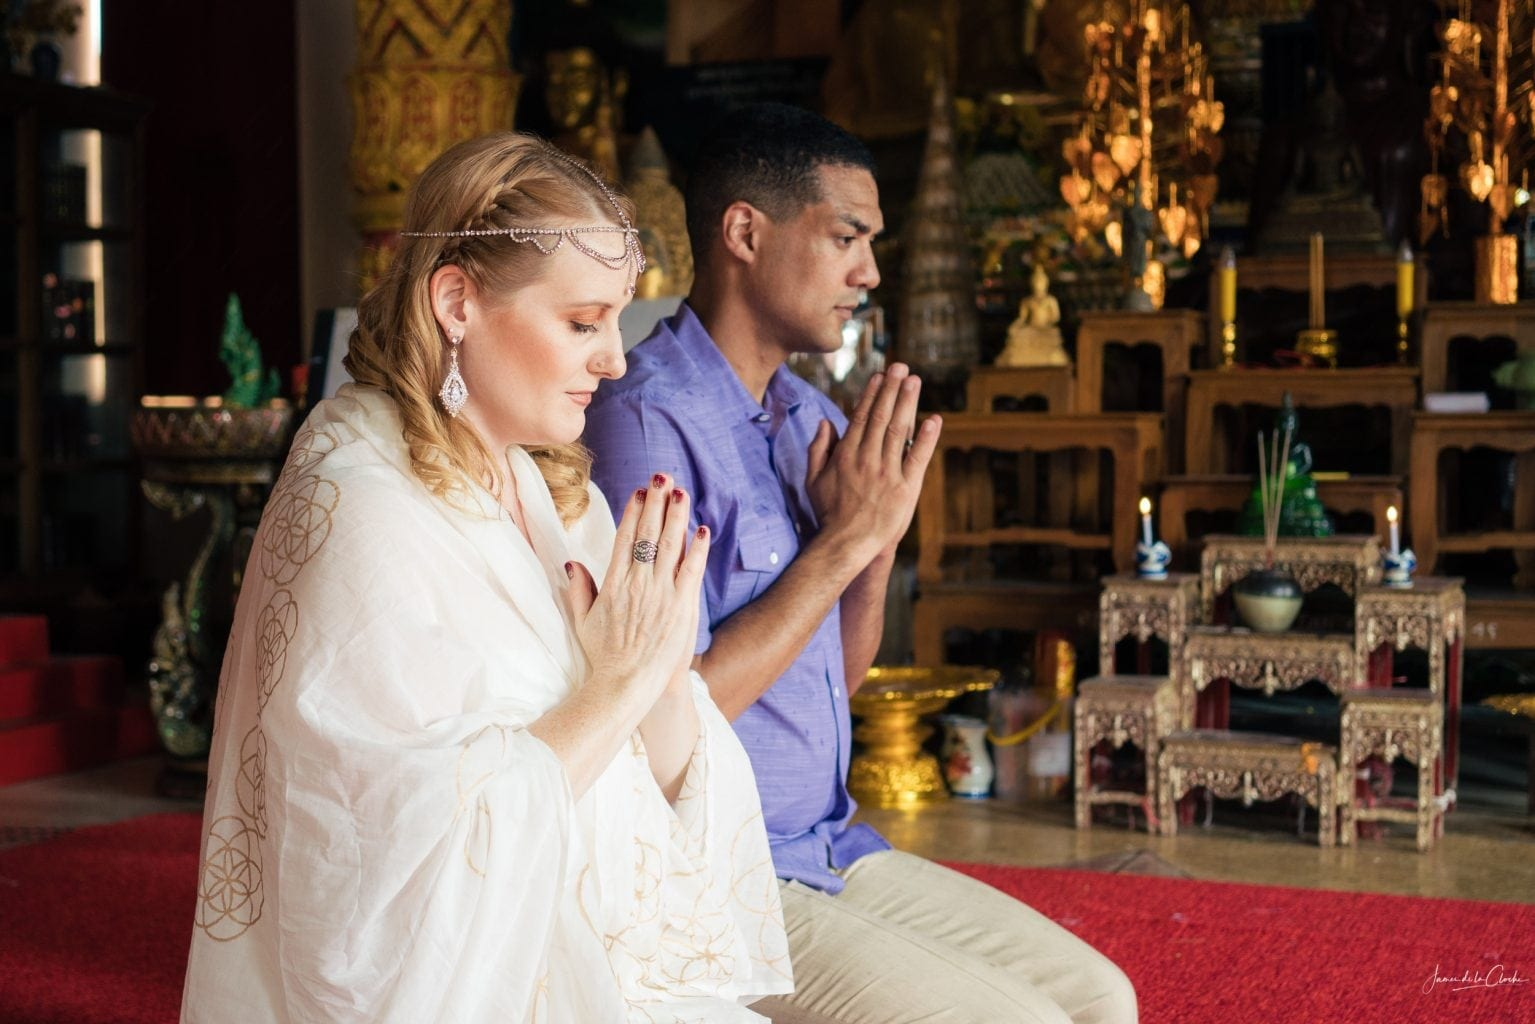 wedding couple hands raised in prayer at Buddhist temple